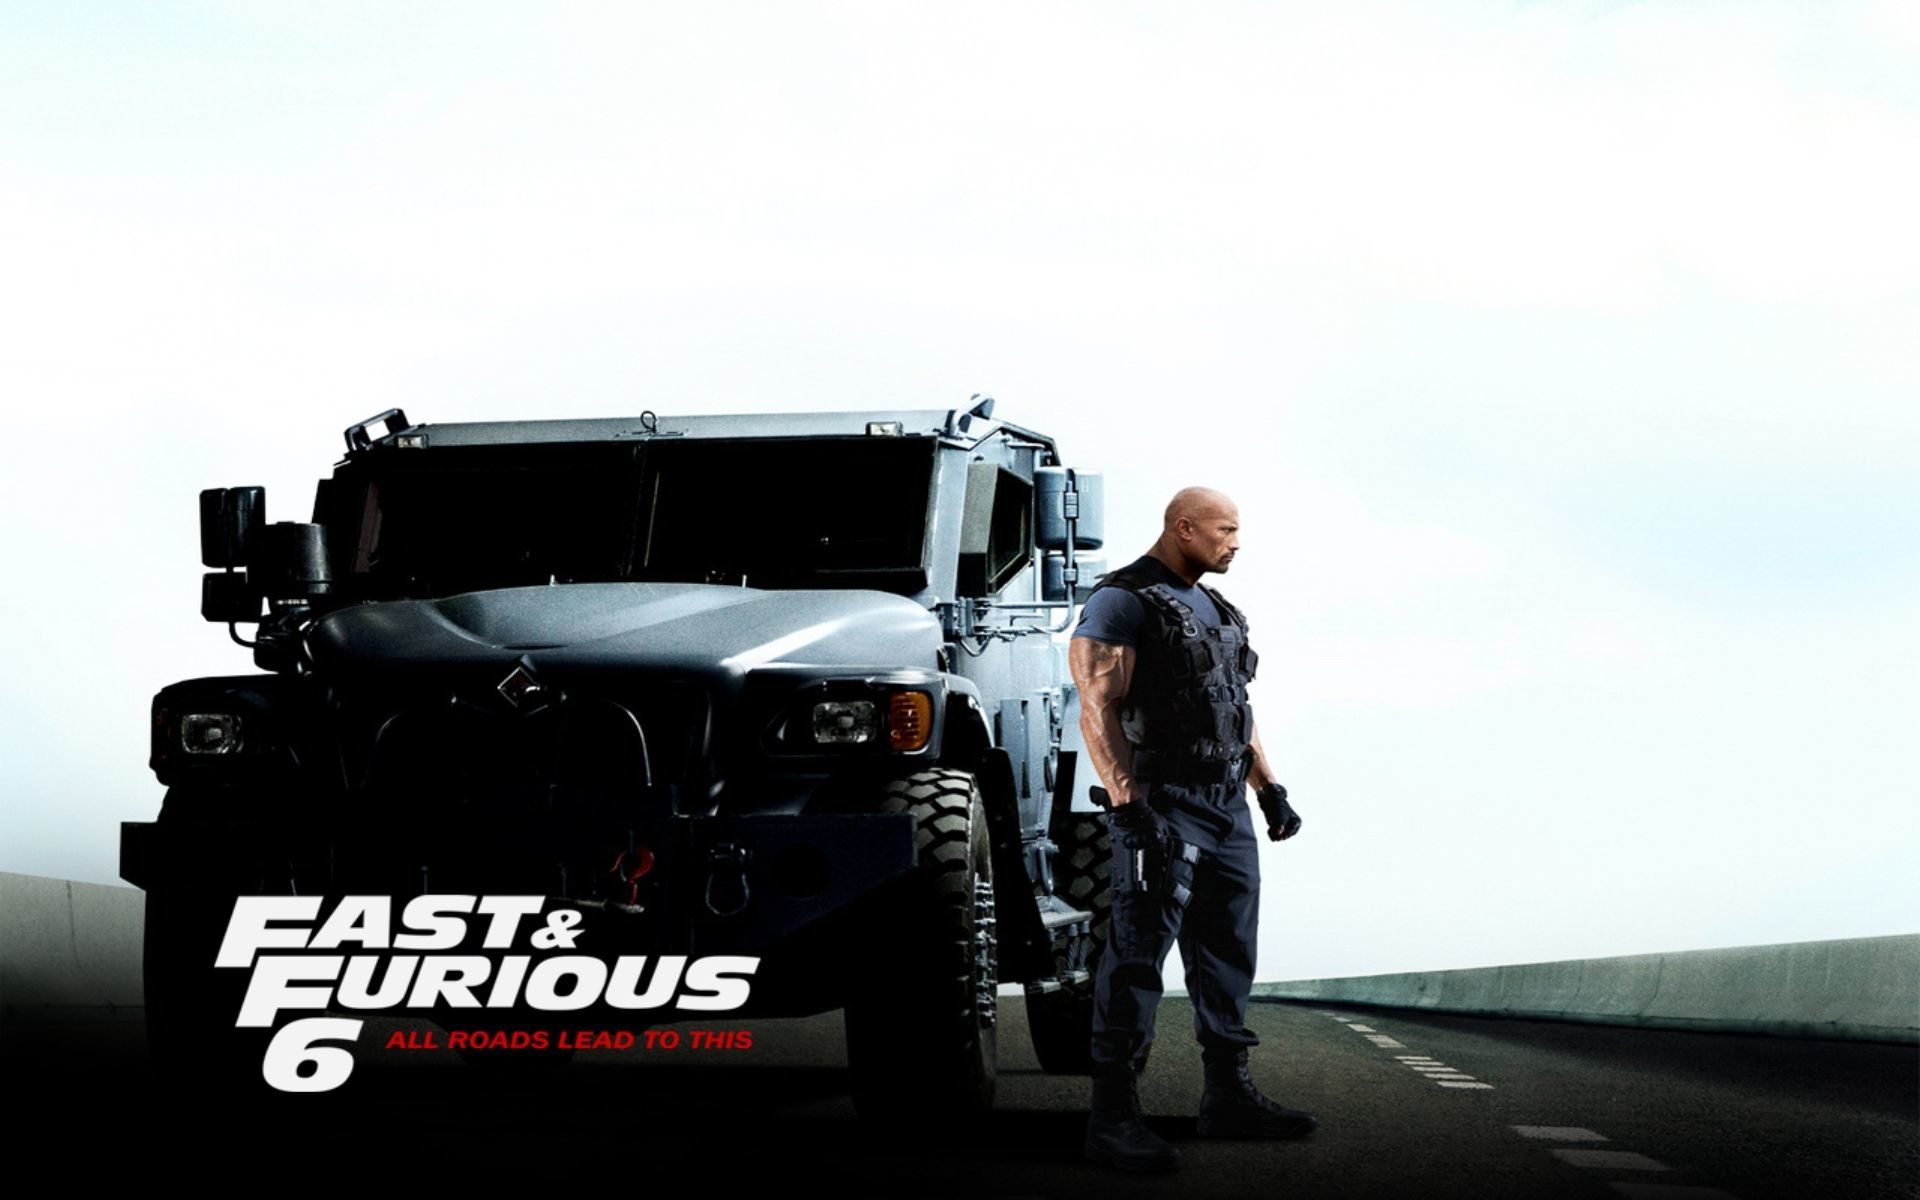 1920x1200 Fast and furious wallpaper Group | HD Wallpapers | Pinterest | 3d wallpaper,  Wallpaper and Hd wallpaper